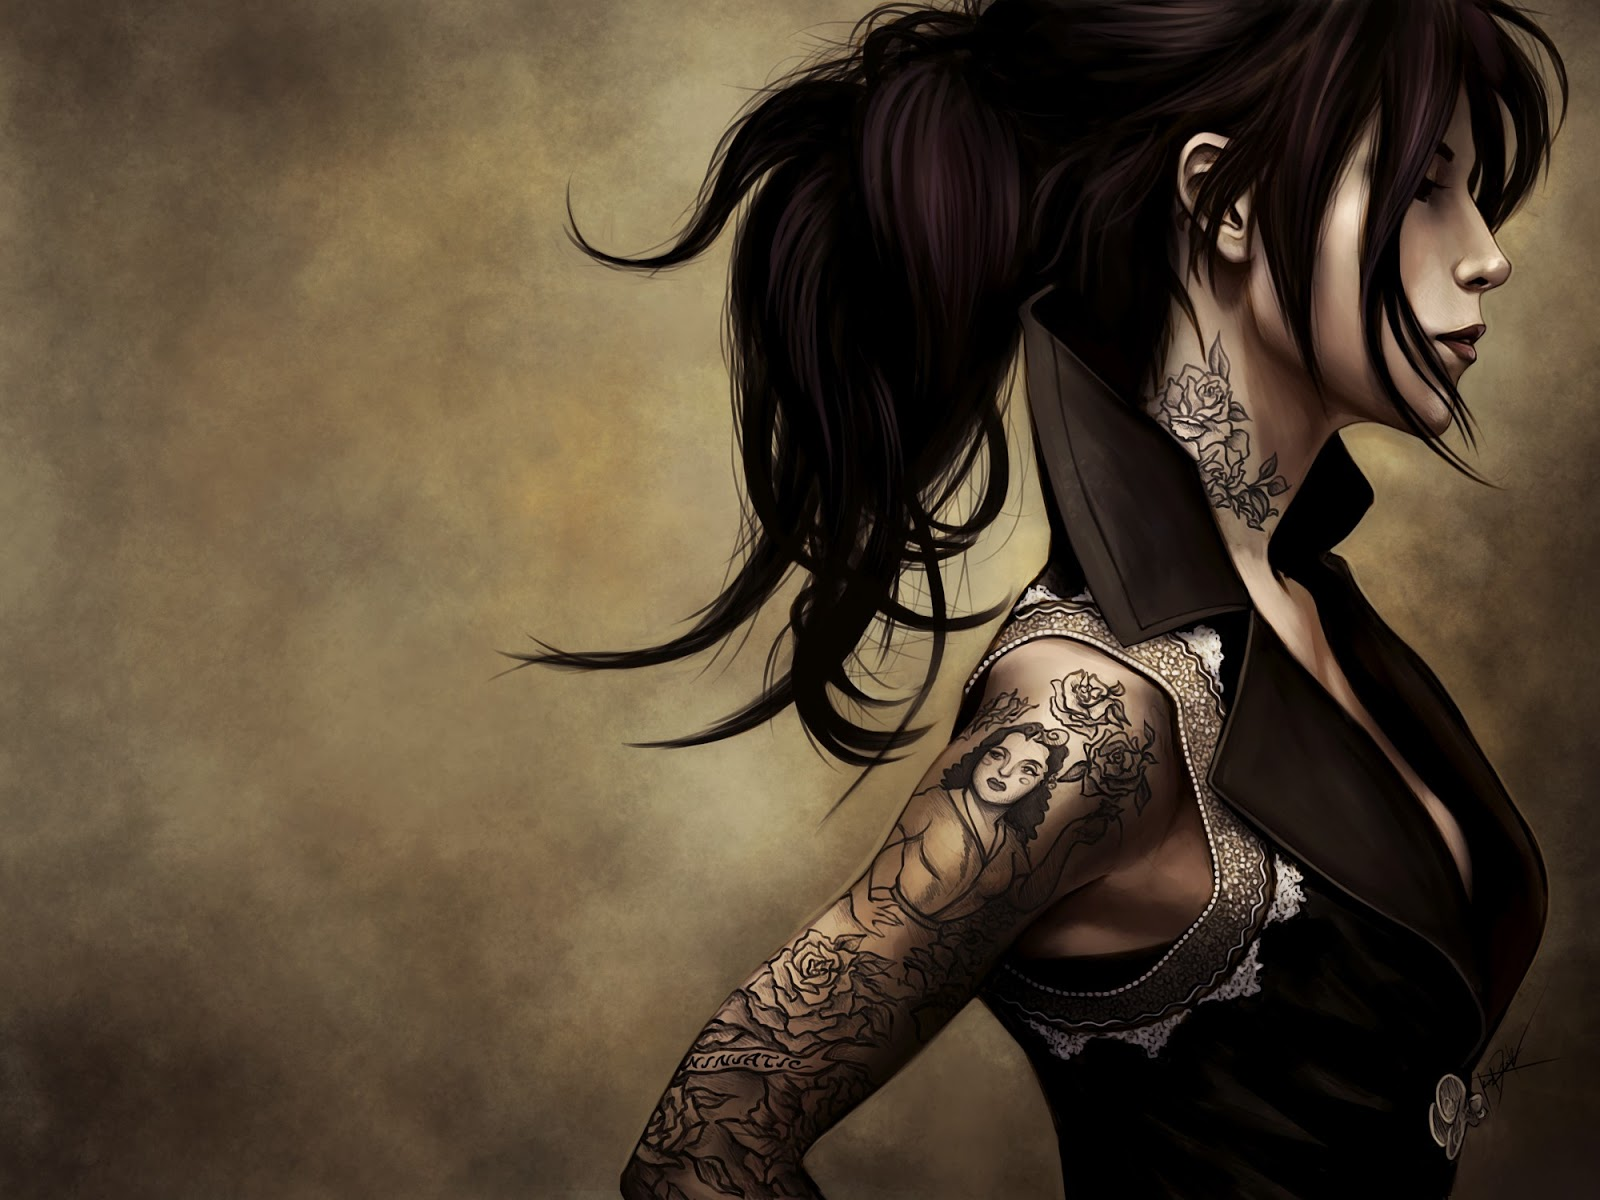 Hot scary wallpaper gothic girl 2